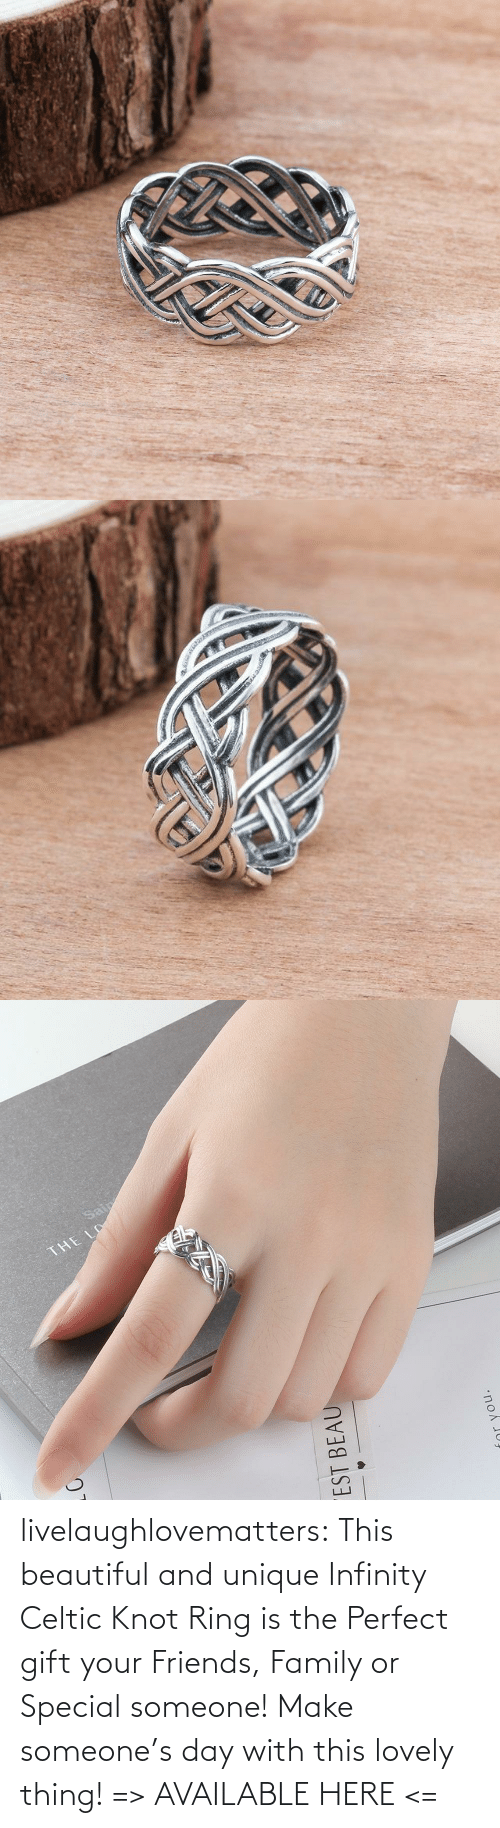 Infinity: livelaughlovematters:  This beautiful and unique Infinity Celtic Knot Ring is the Perfect gift your Friends, Family or Special someone! Make someone's day with this lovely thing! => AVAILABLE HERE <=